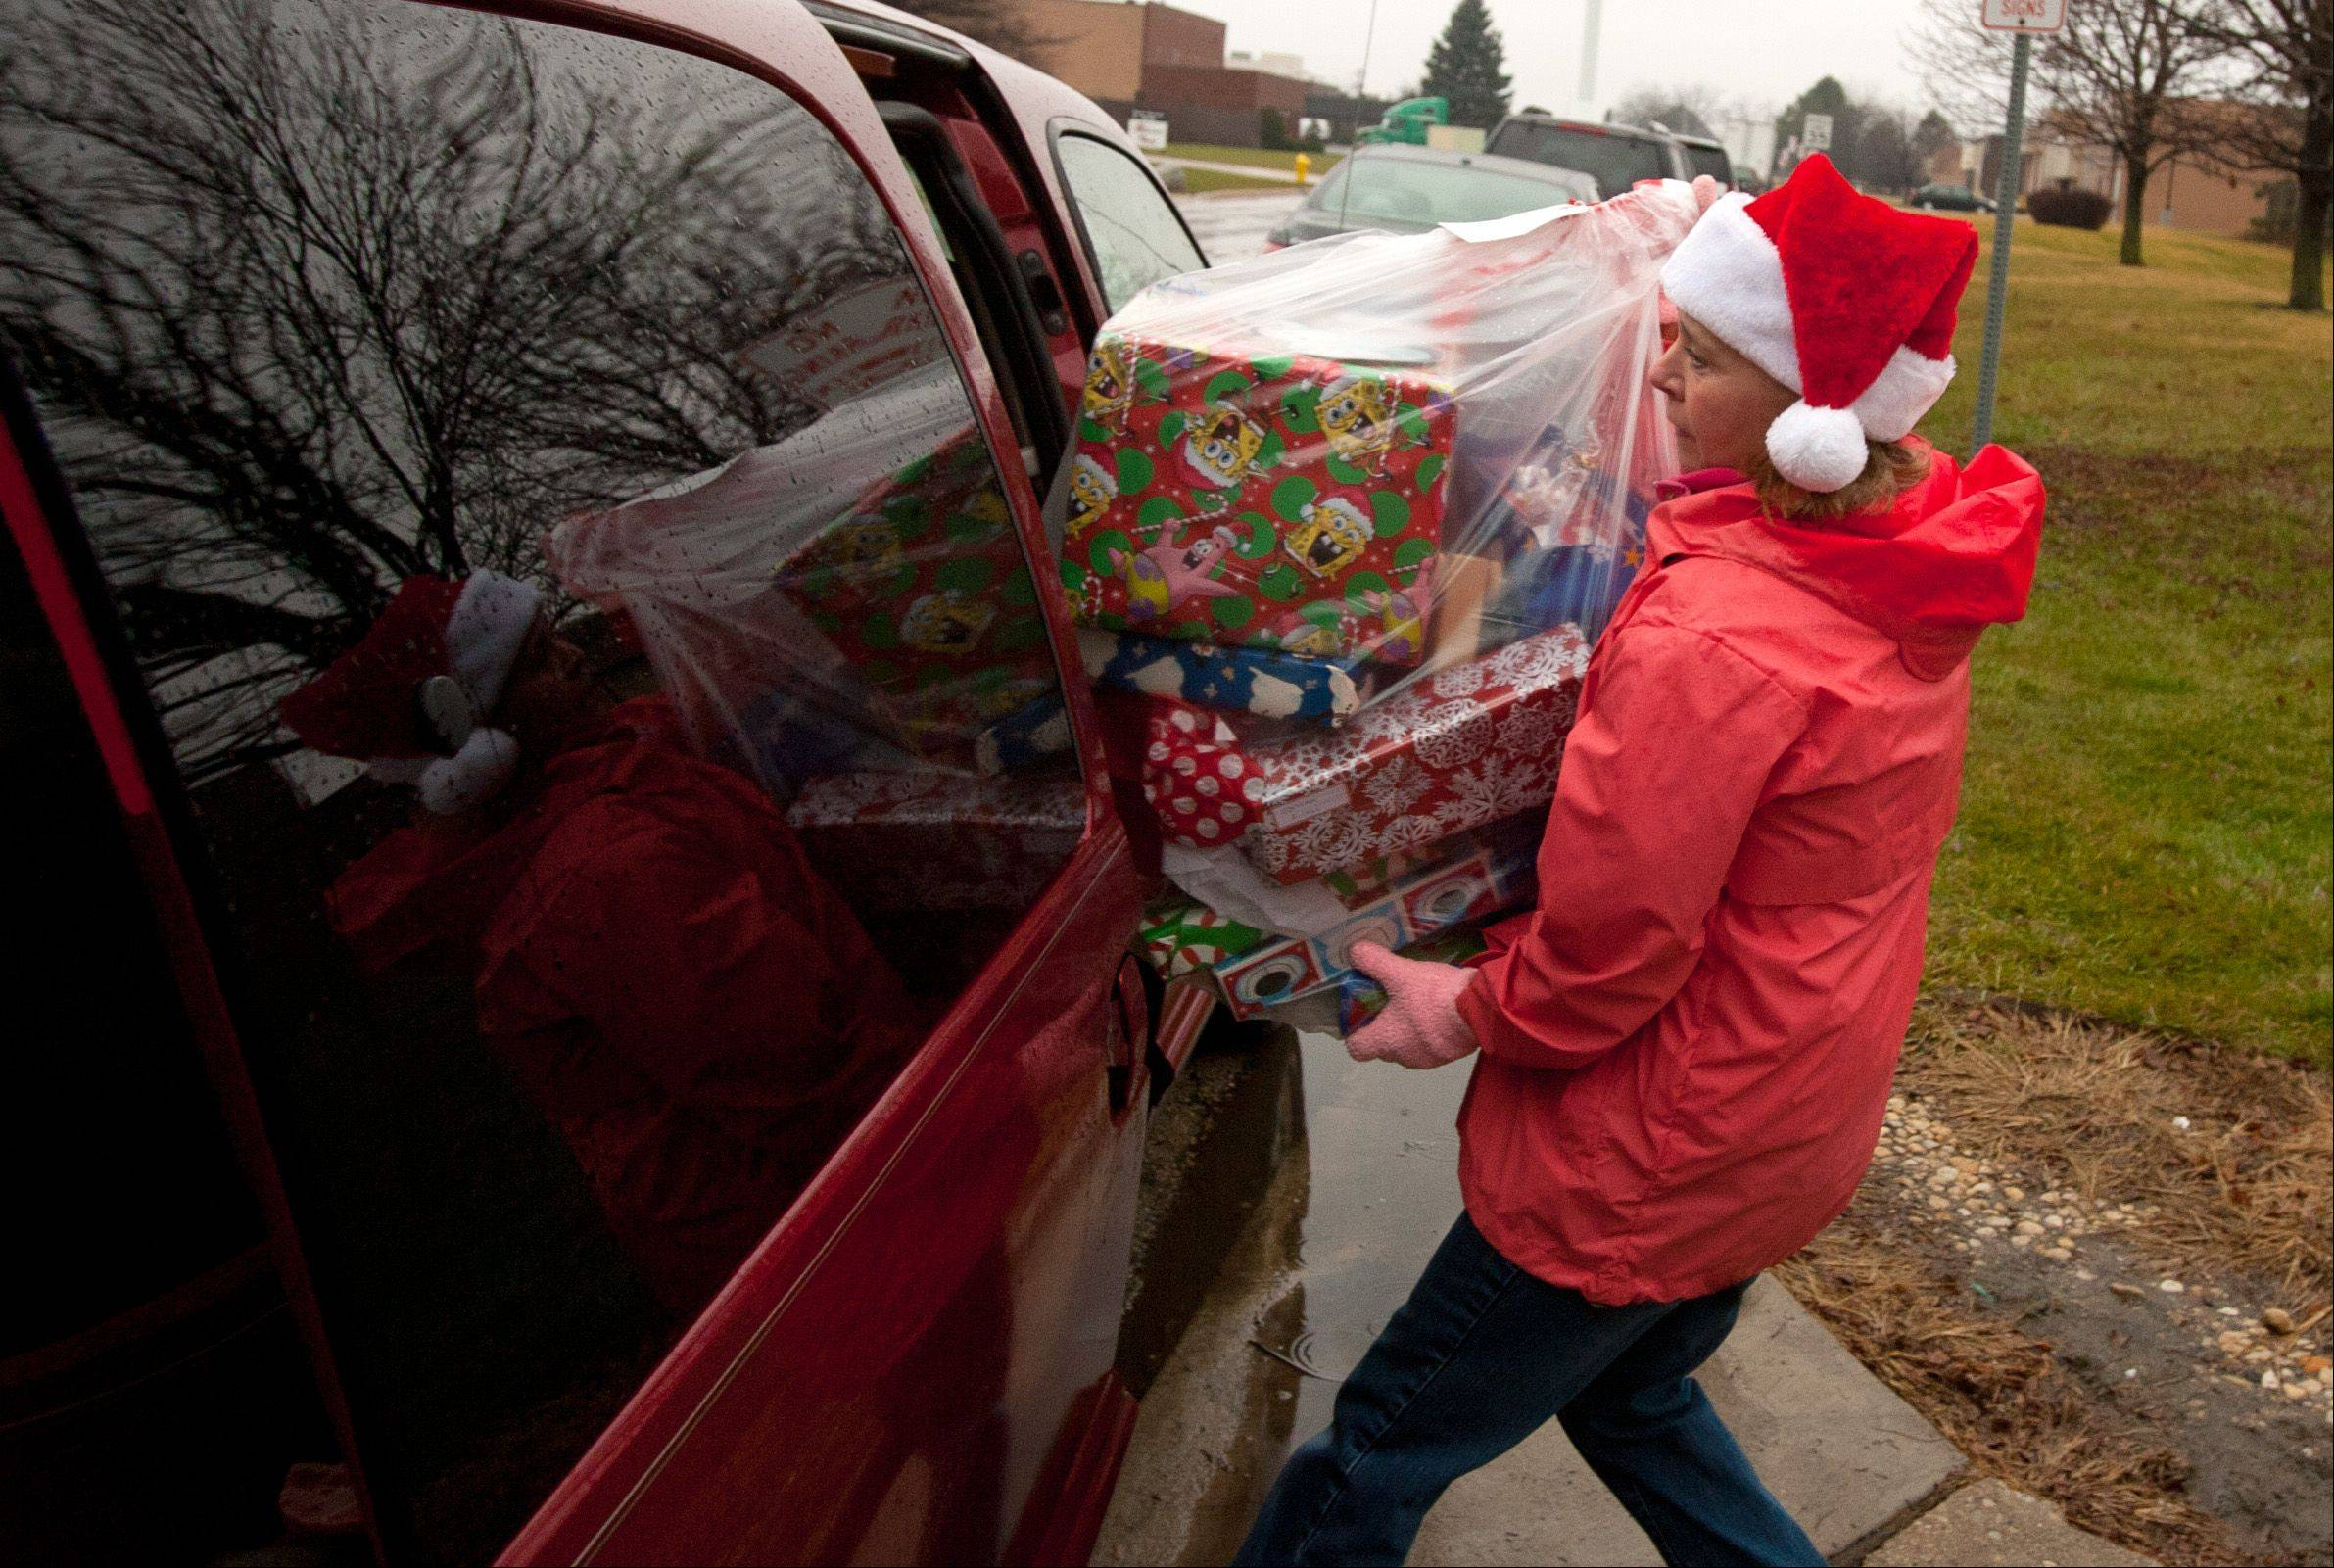 Jan Bolsoni of Glen Ellyn, a member of Peace Lutheran Church in Lombard, loads presents as the Humanitarian Service Project distributes holiday packages to area families in need.